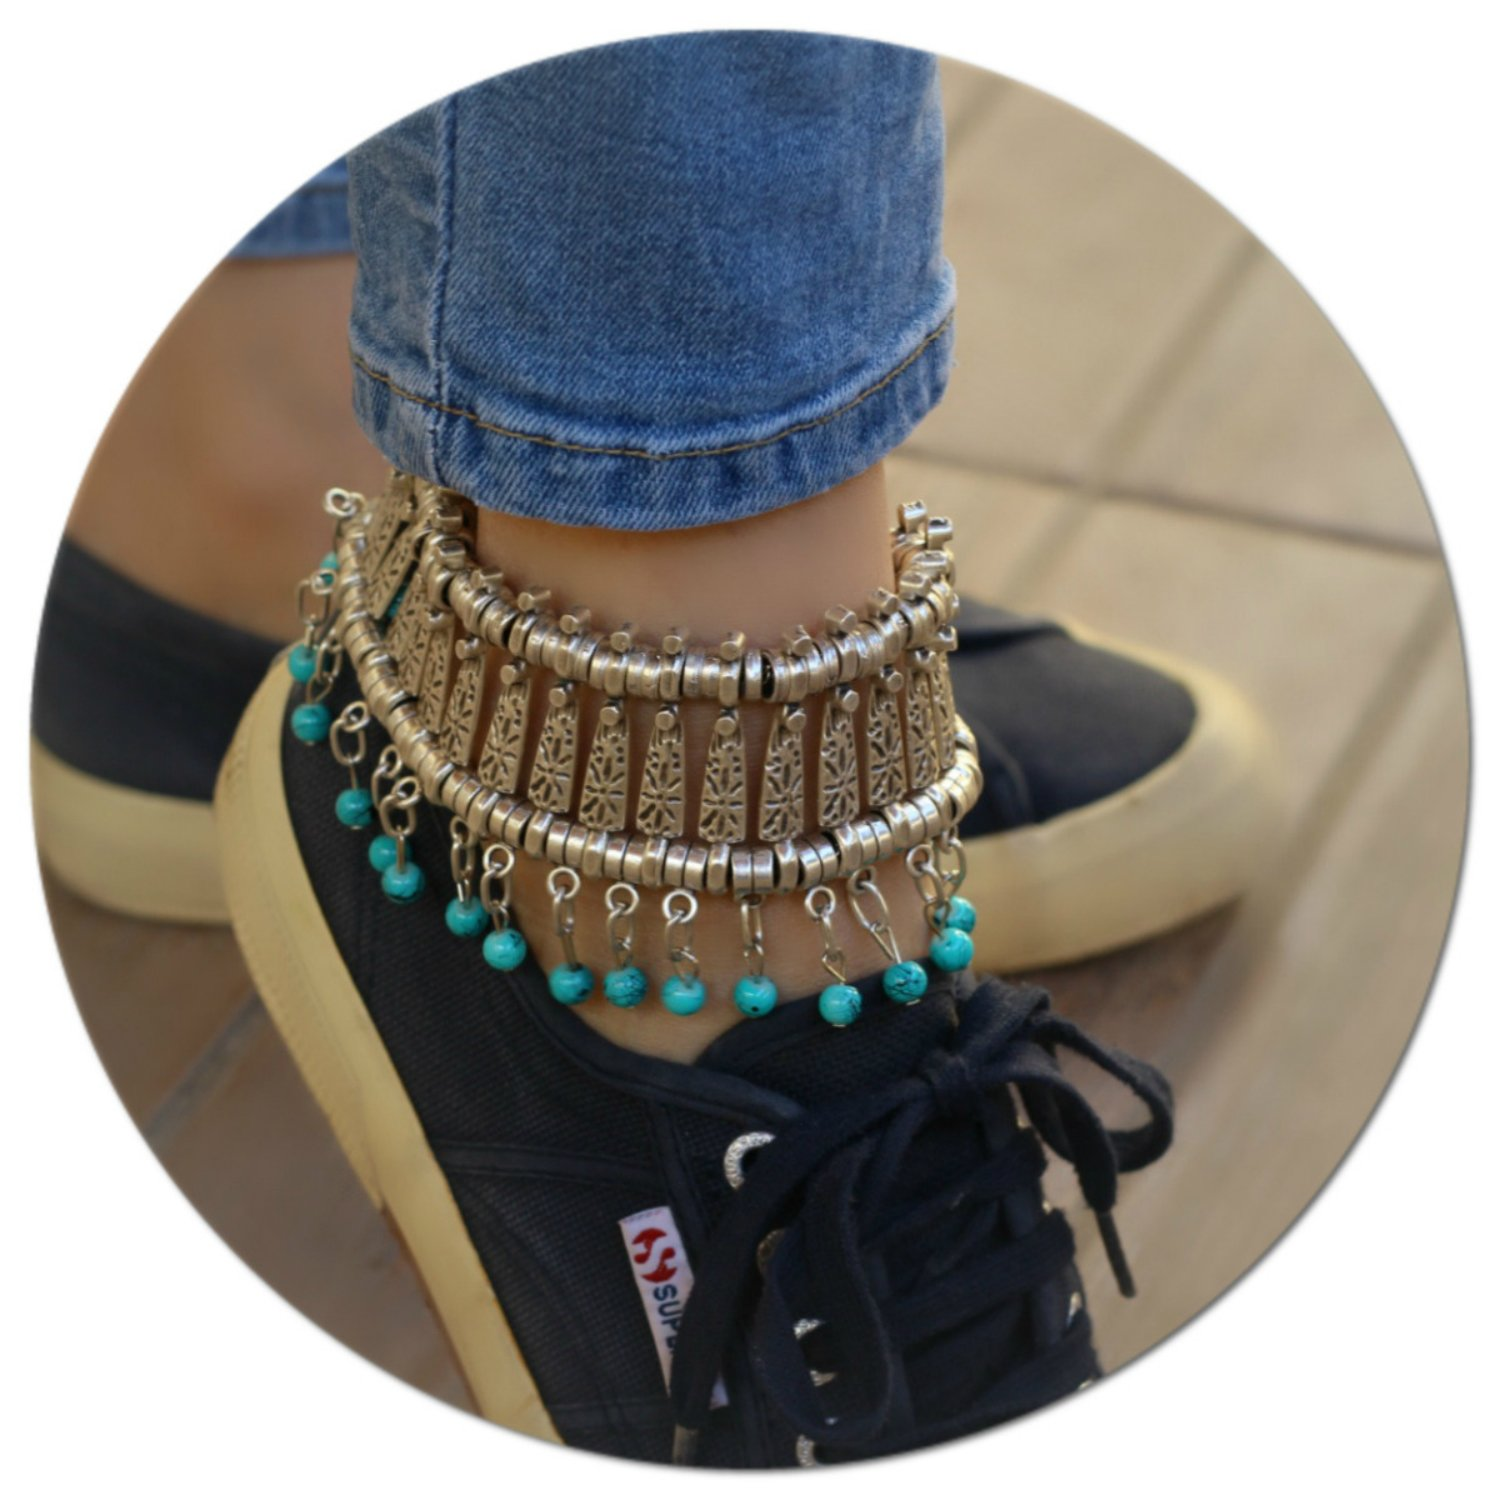 Silver Plated Boho Anklet Beach Summer Ankle Bracelet Foot Chain Jewelry Adjustable Barefoot Sandal with Turquoise Stone